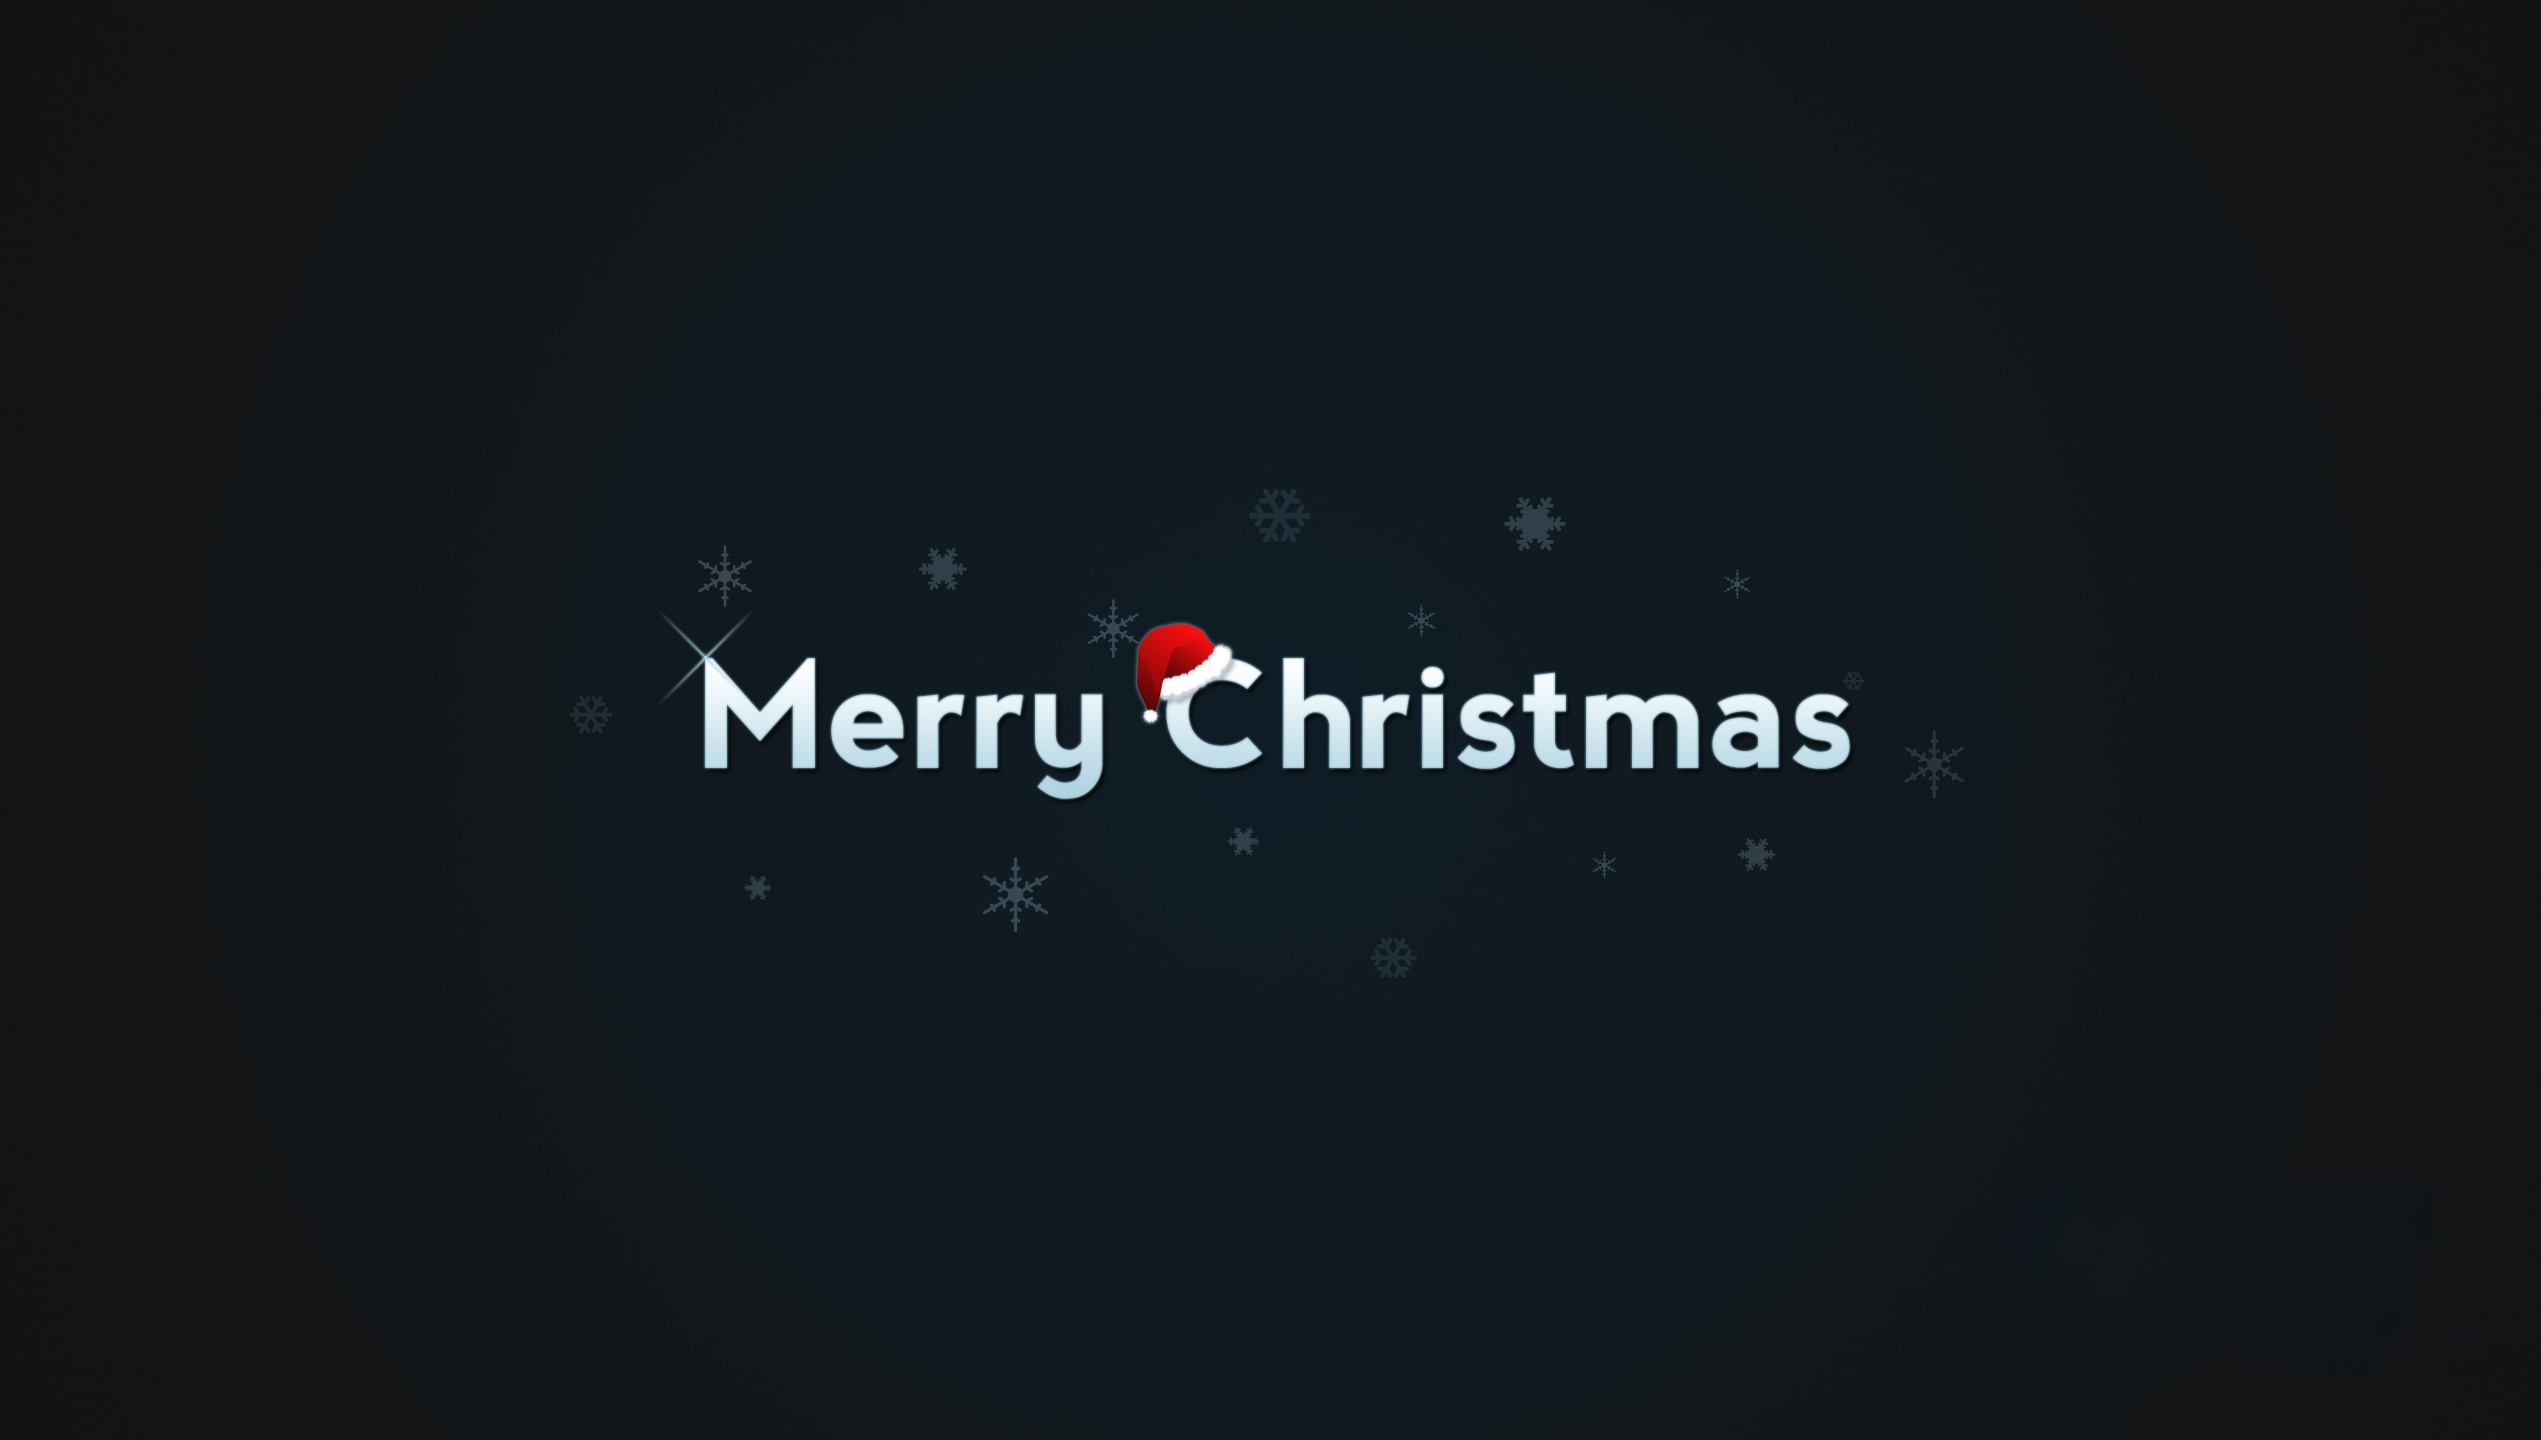 merry_christmas_with_red_hat-other